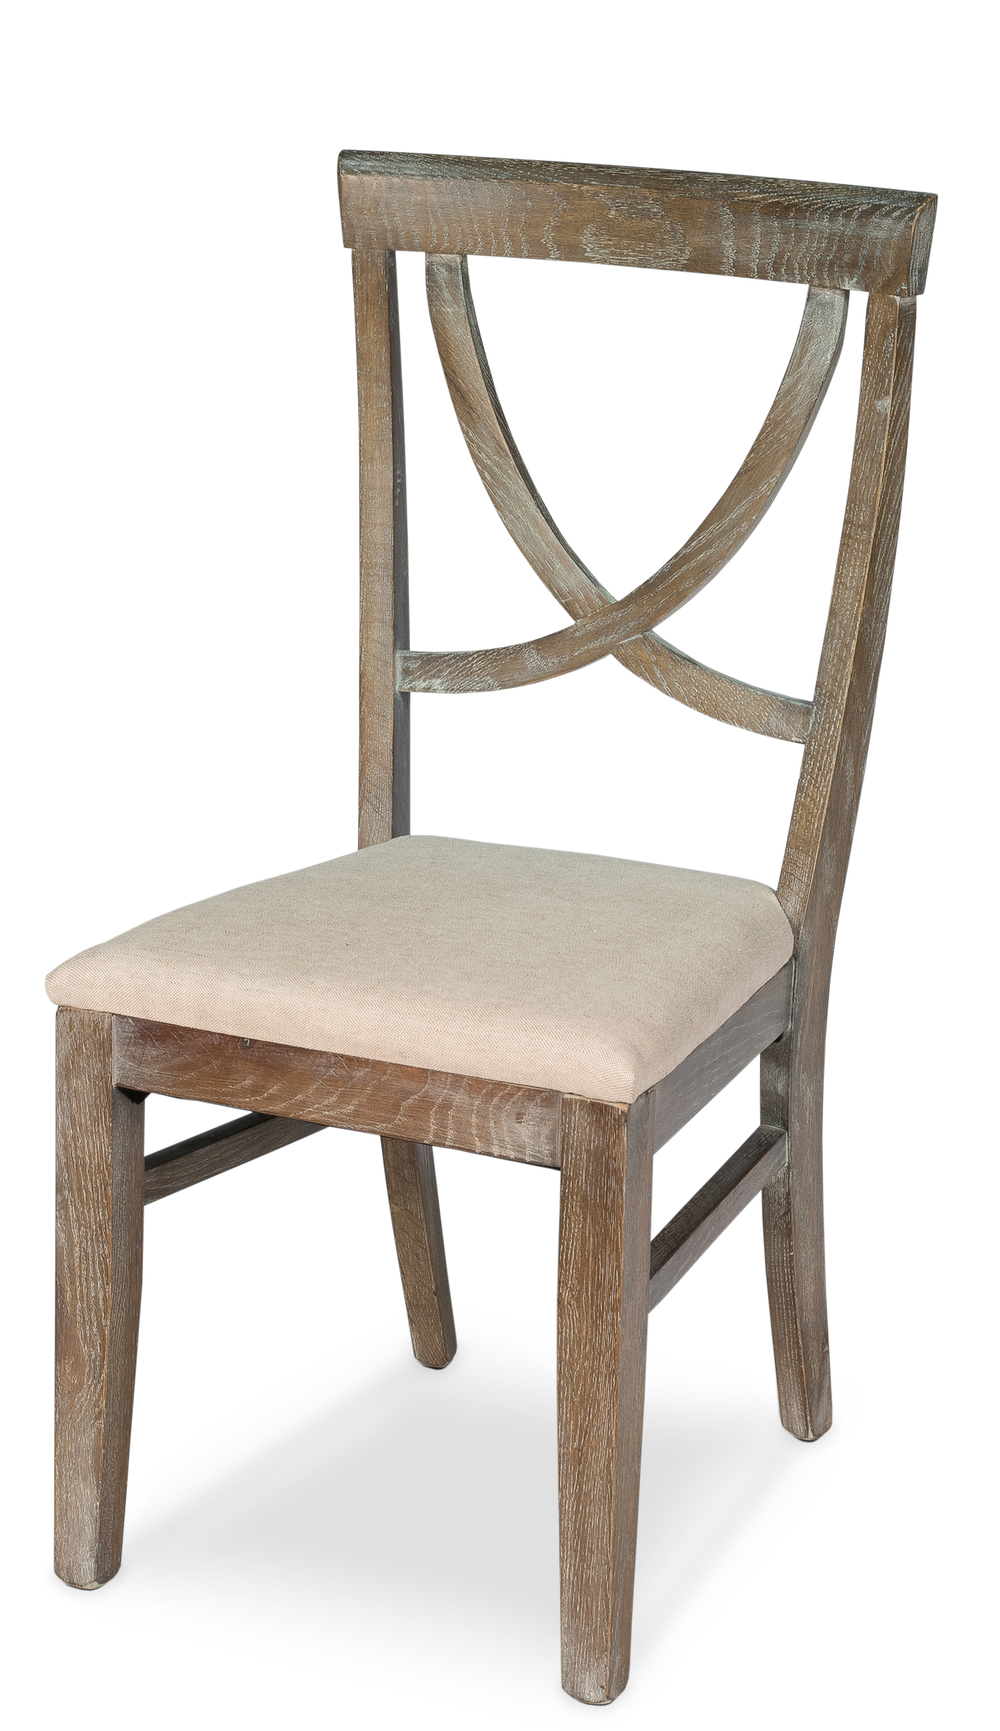 Sarreid - Monet's Side Chair